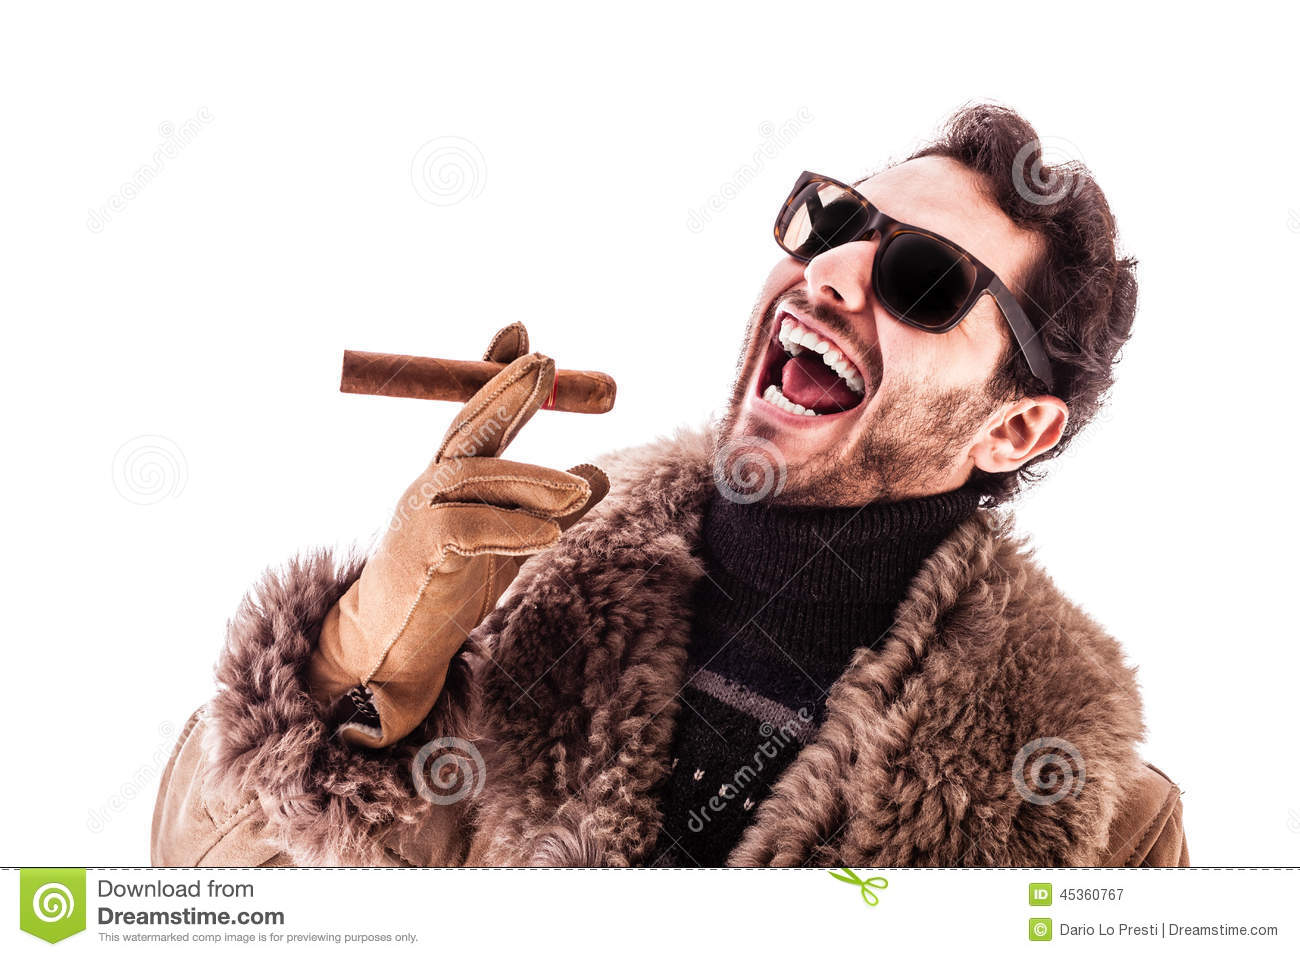 Sheepskin Hustler Stock Image. Image Of Criminal, Laugh, Holding